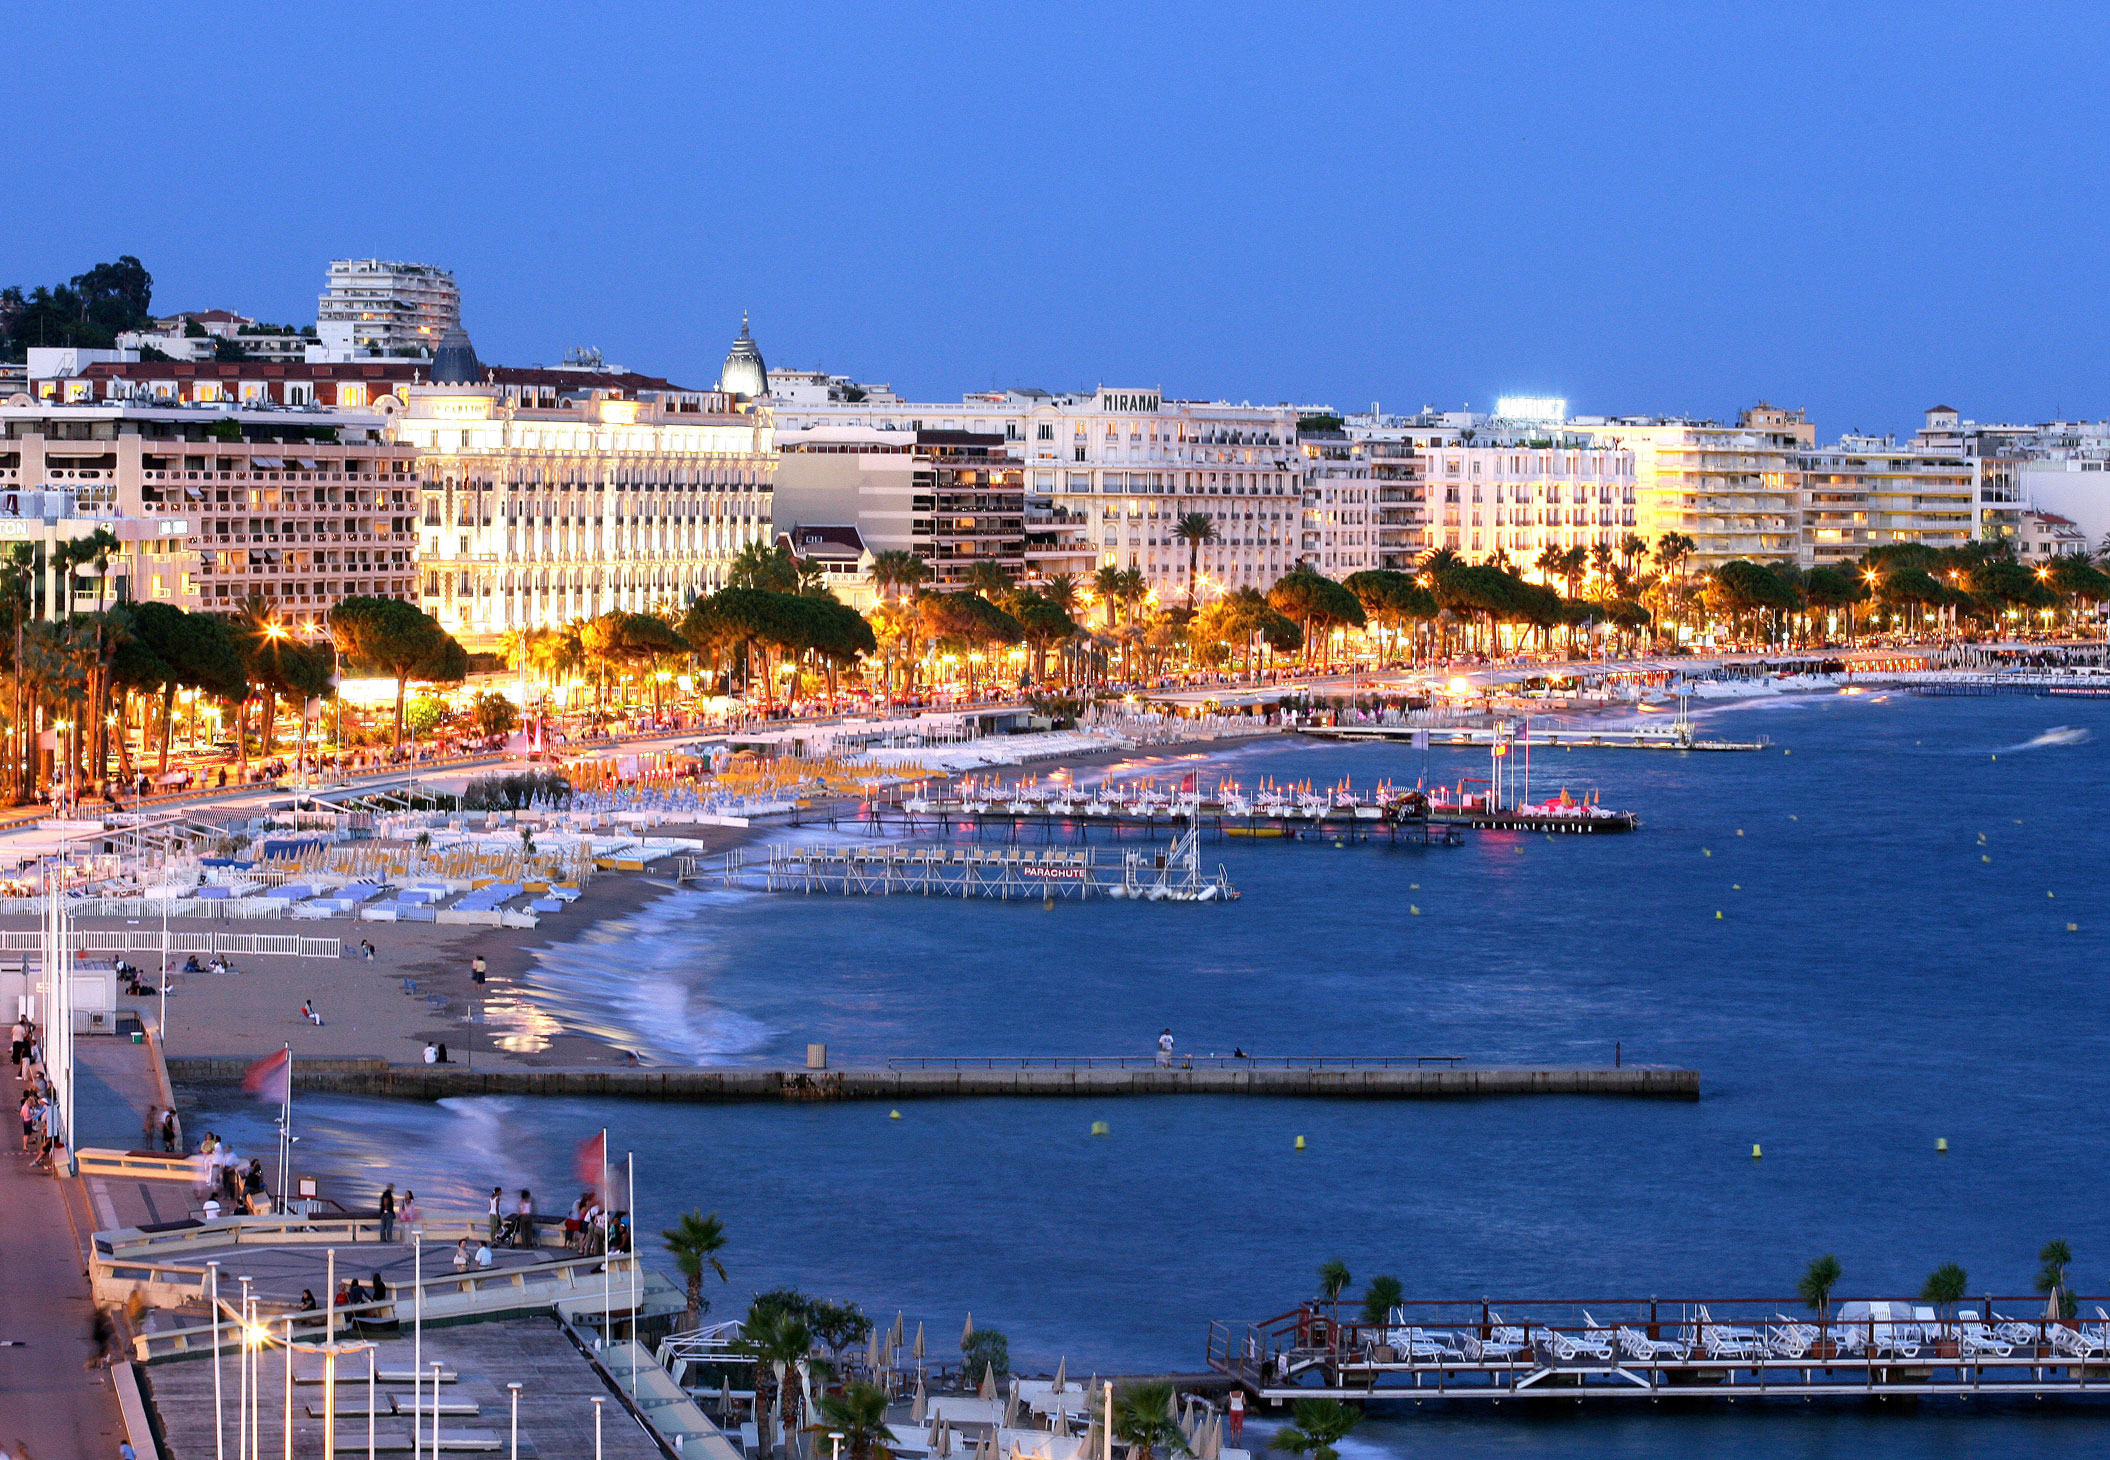 A Luxury Weekend Break On The Fabulous French Riviera – Cannes - Luxurious Magazine